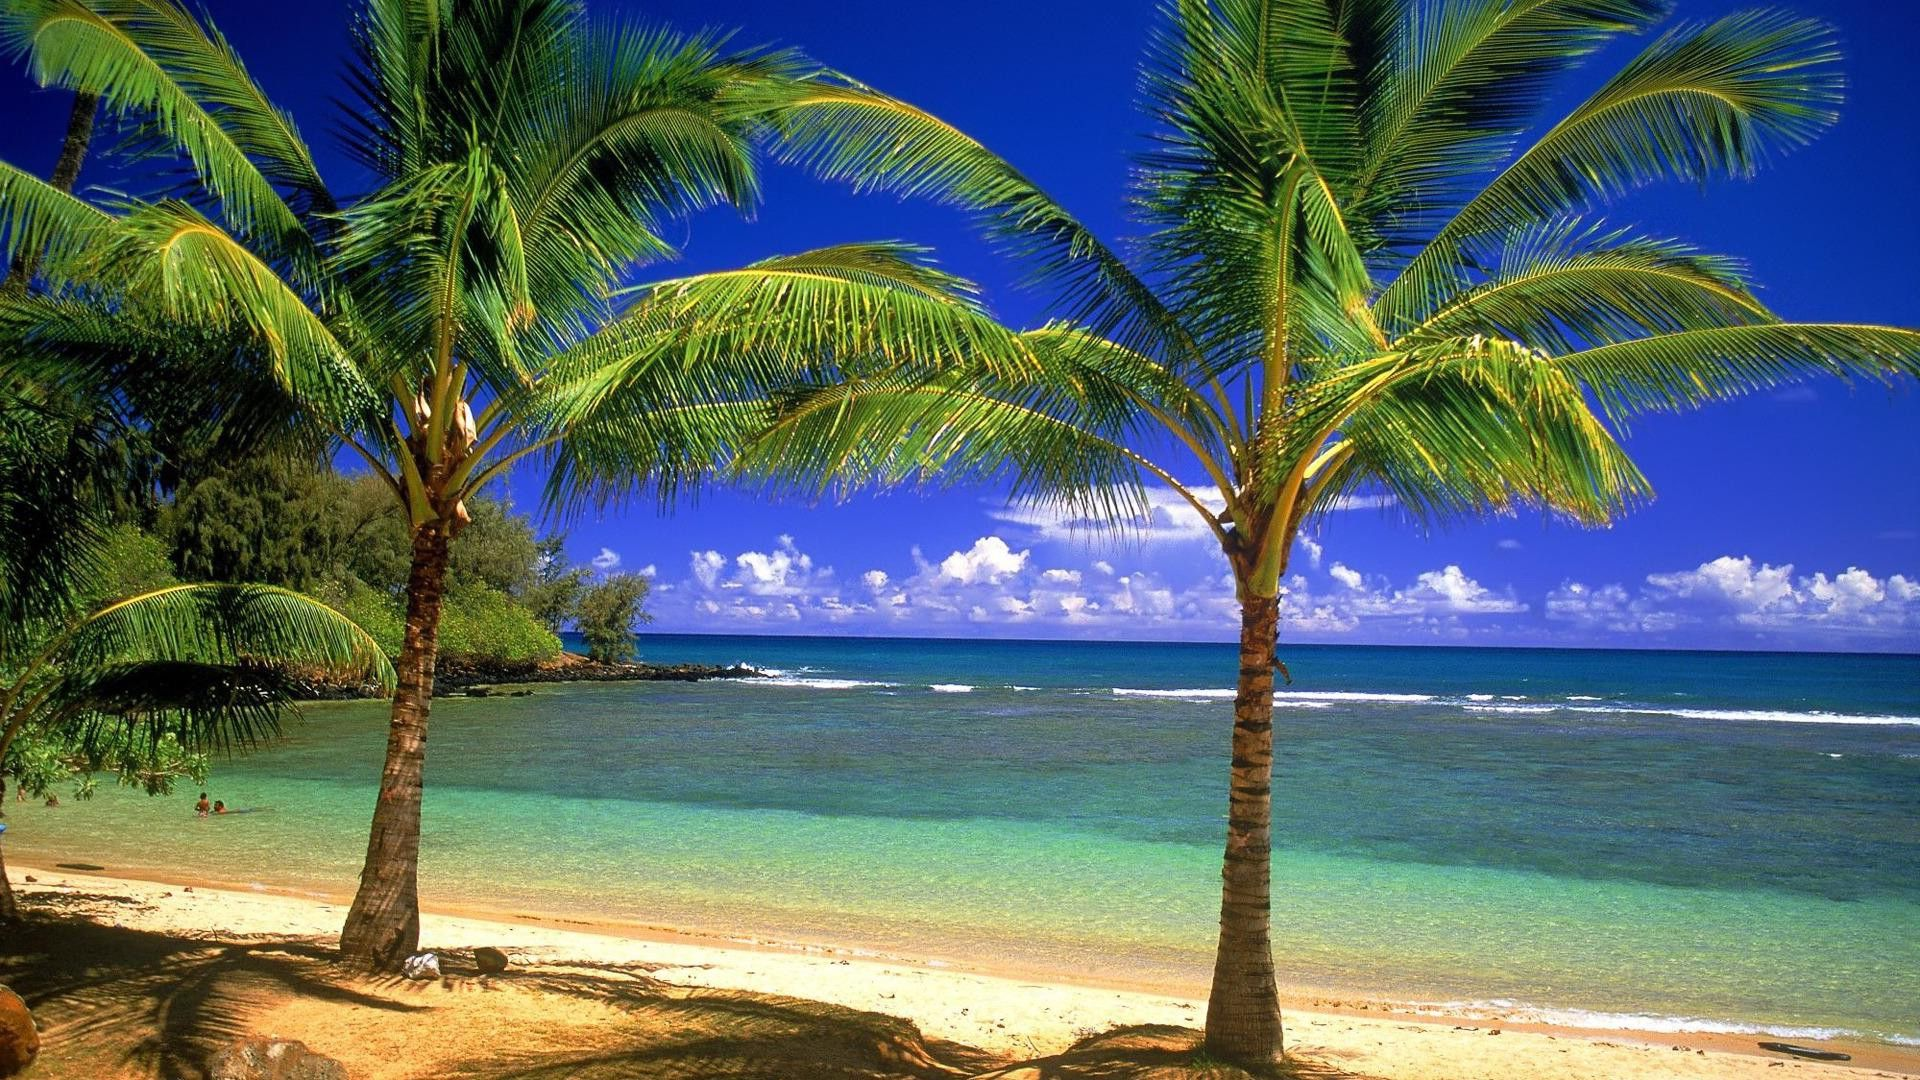 beach hd wallpapers, http://www.firsthdwallpapers/beach-hd